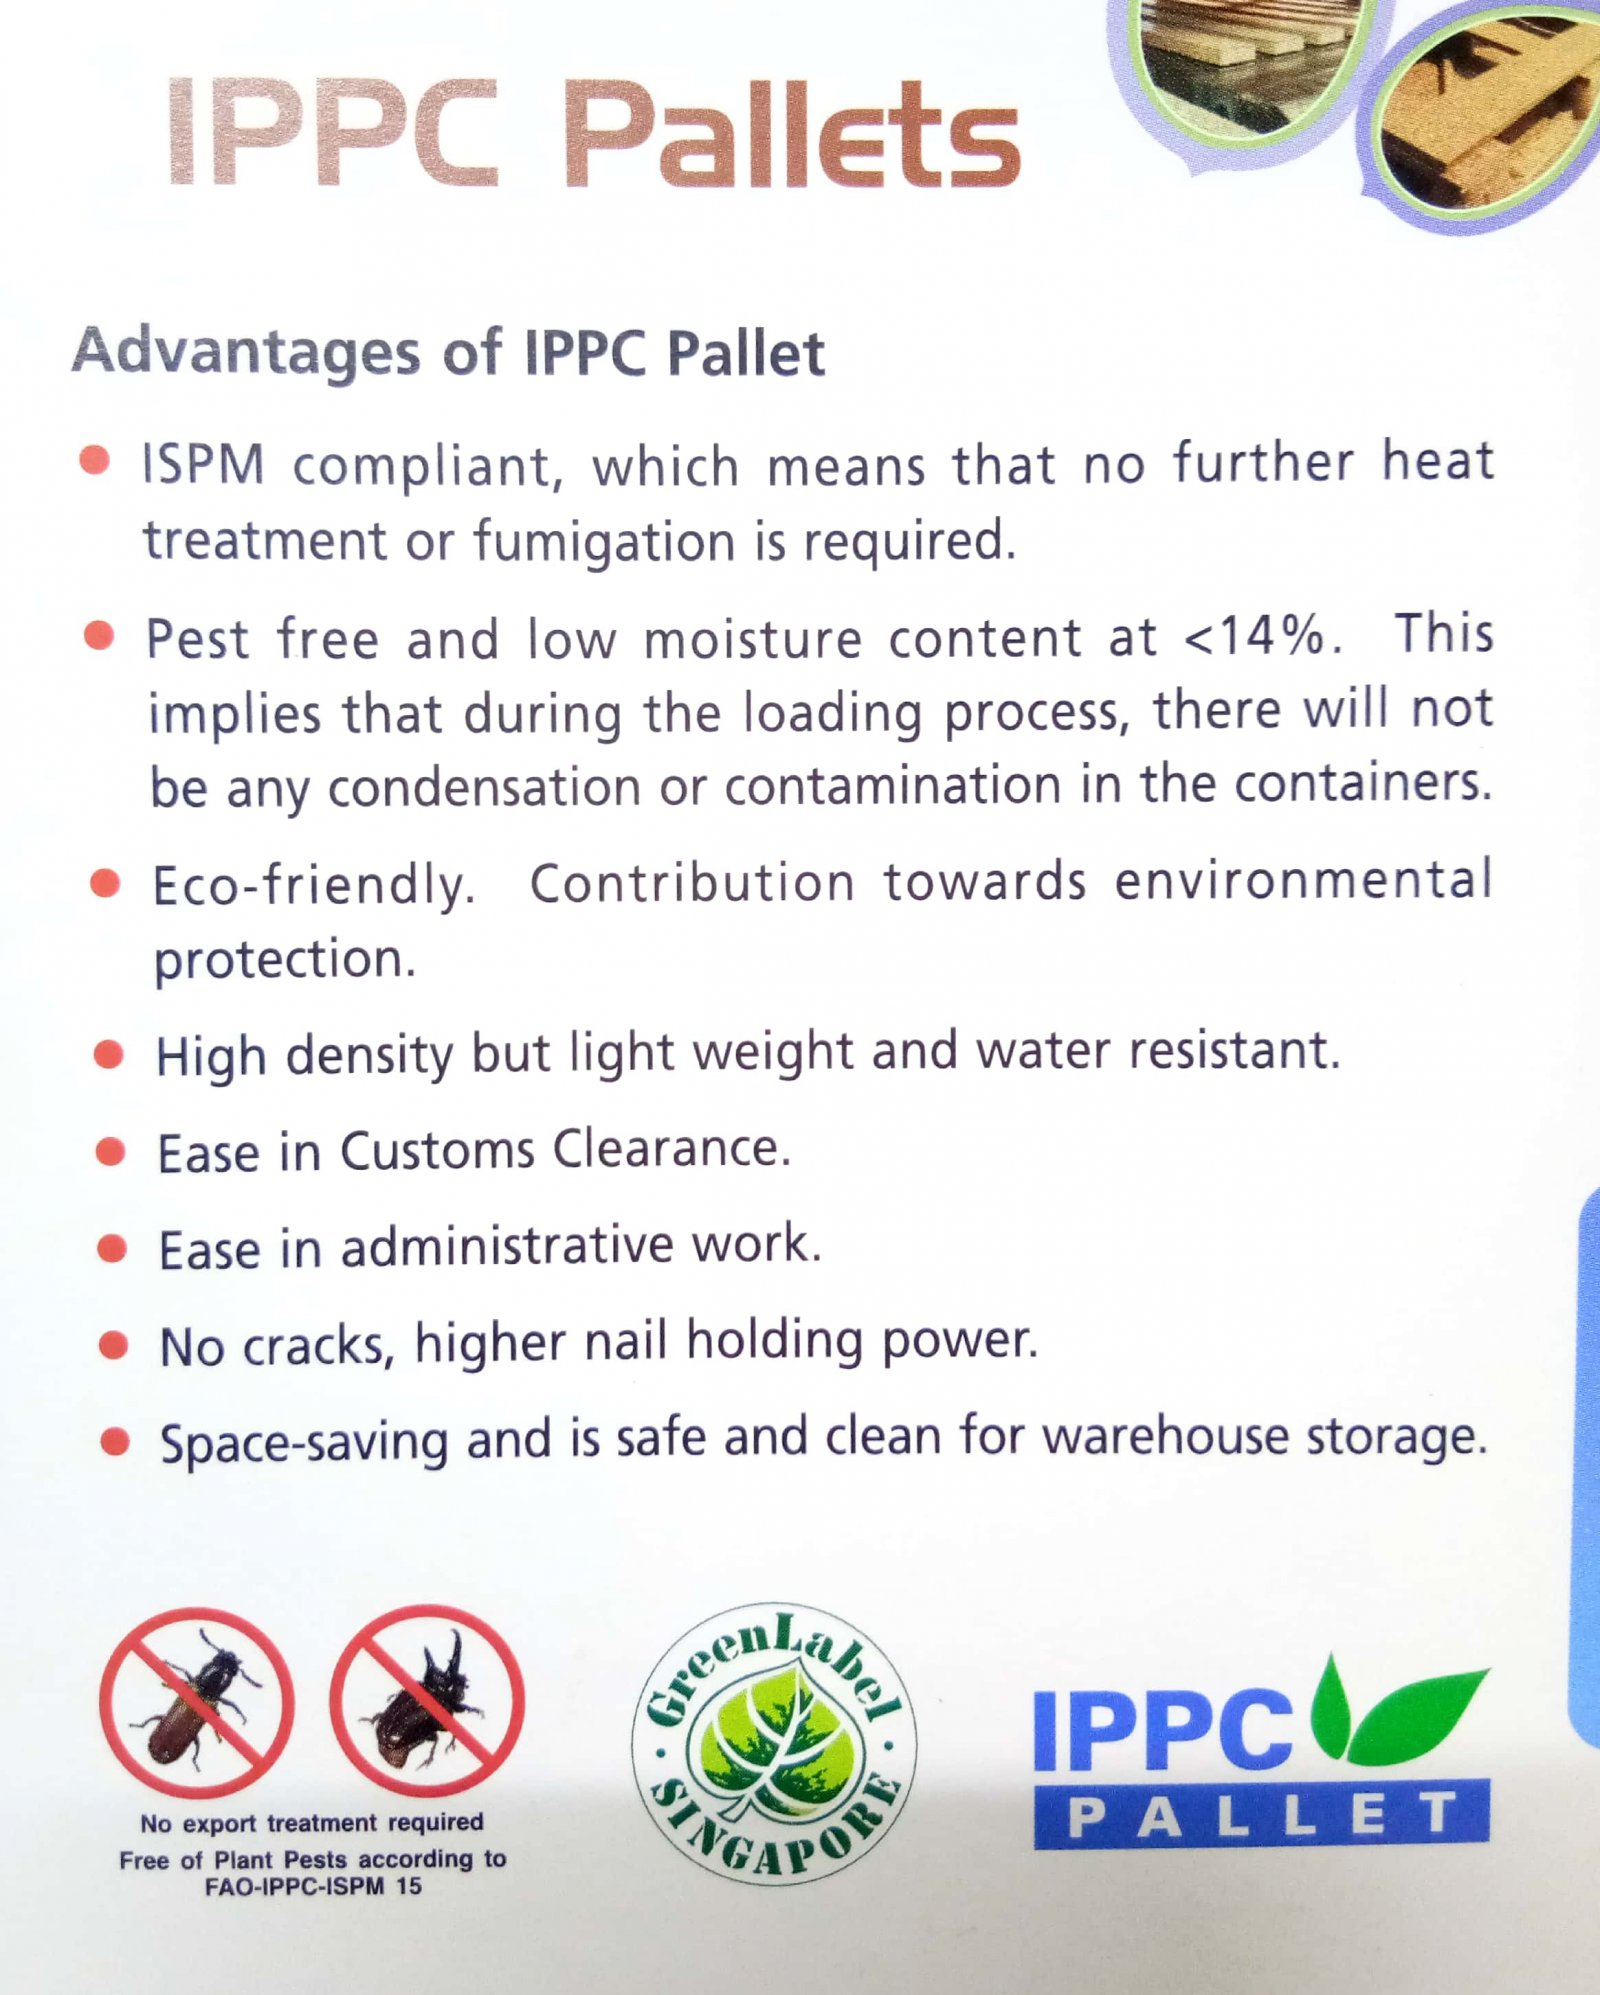 Advantages of IPPC Pallet